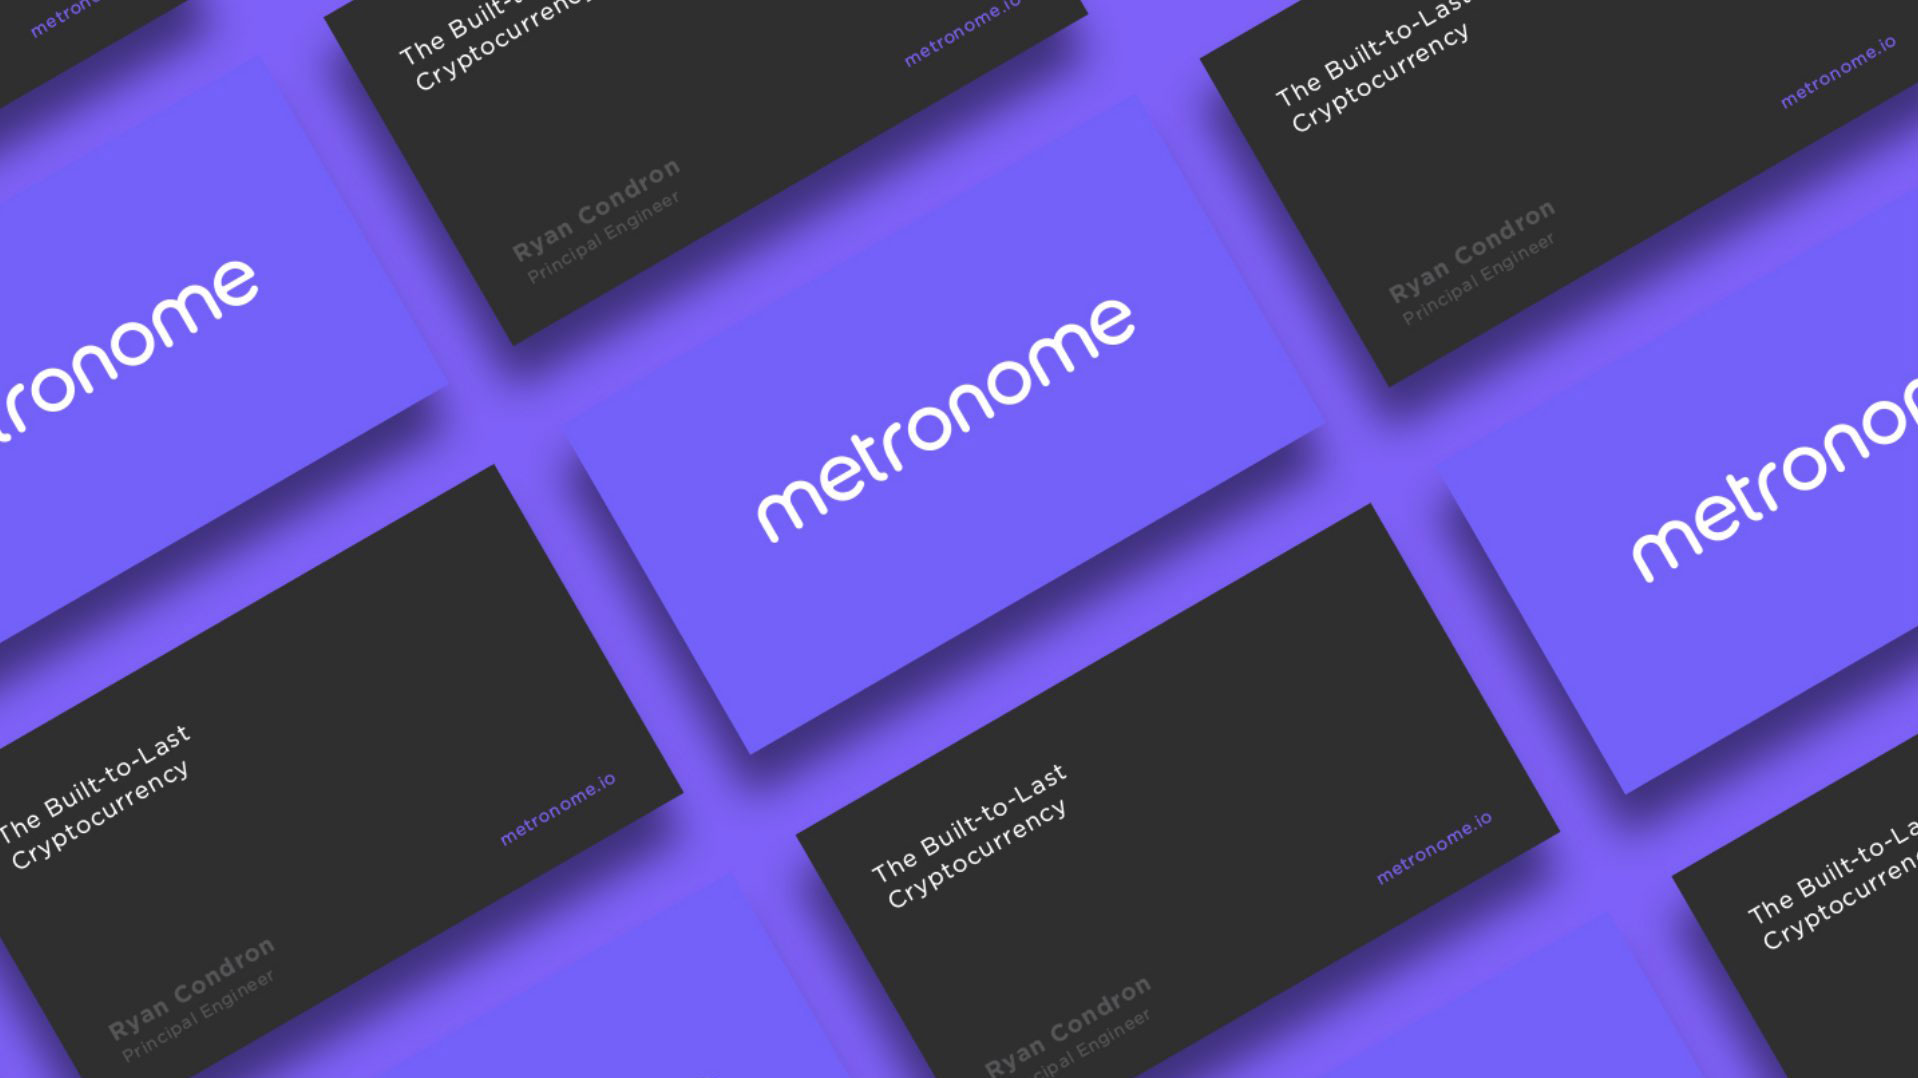 Metronome business cards